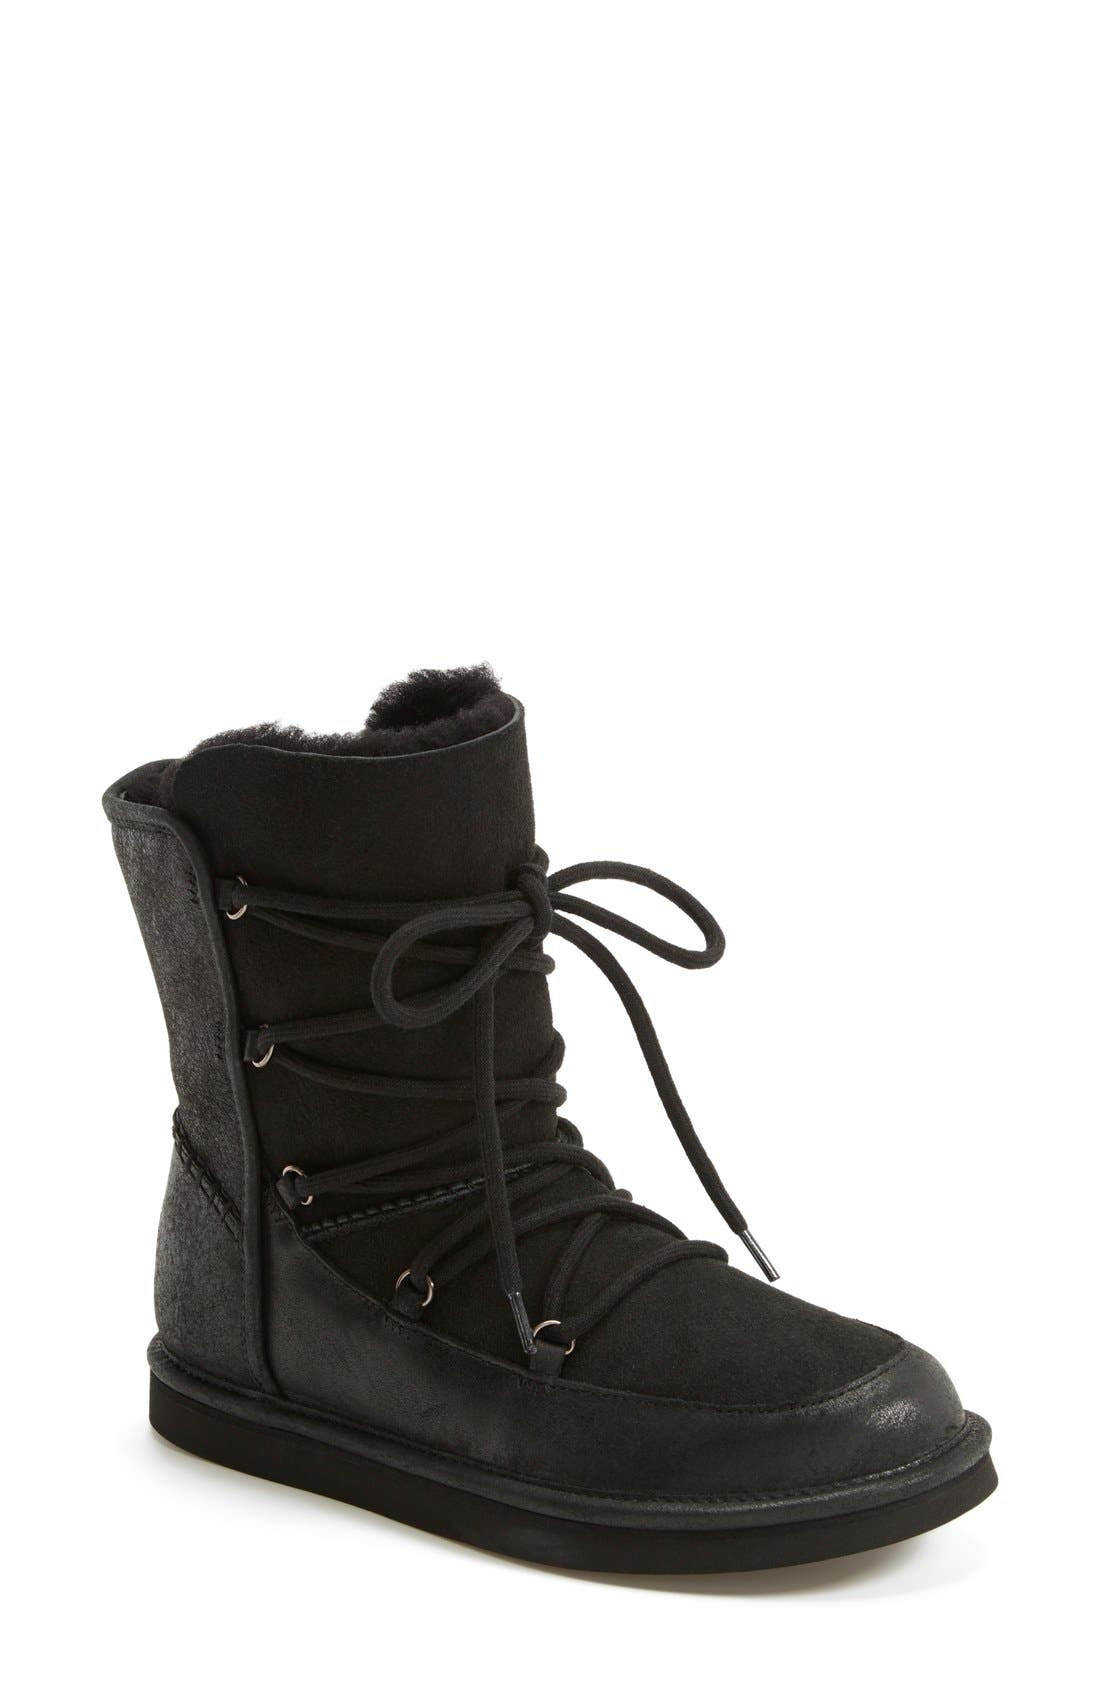 UGG<SUP>®</SUP>, Lodge Water Resistant Lace-Up Boot, Main thumbnail 1, color, 001